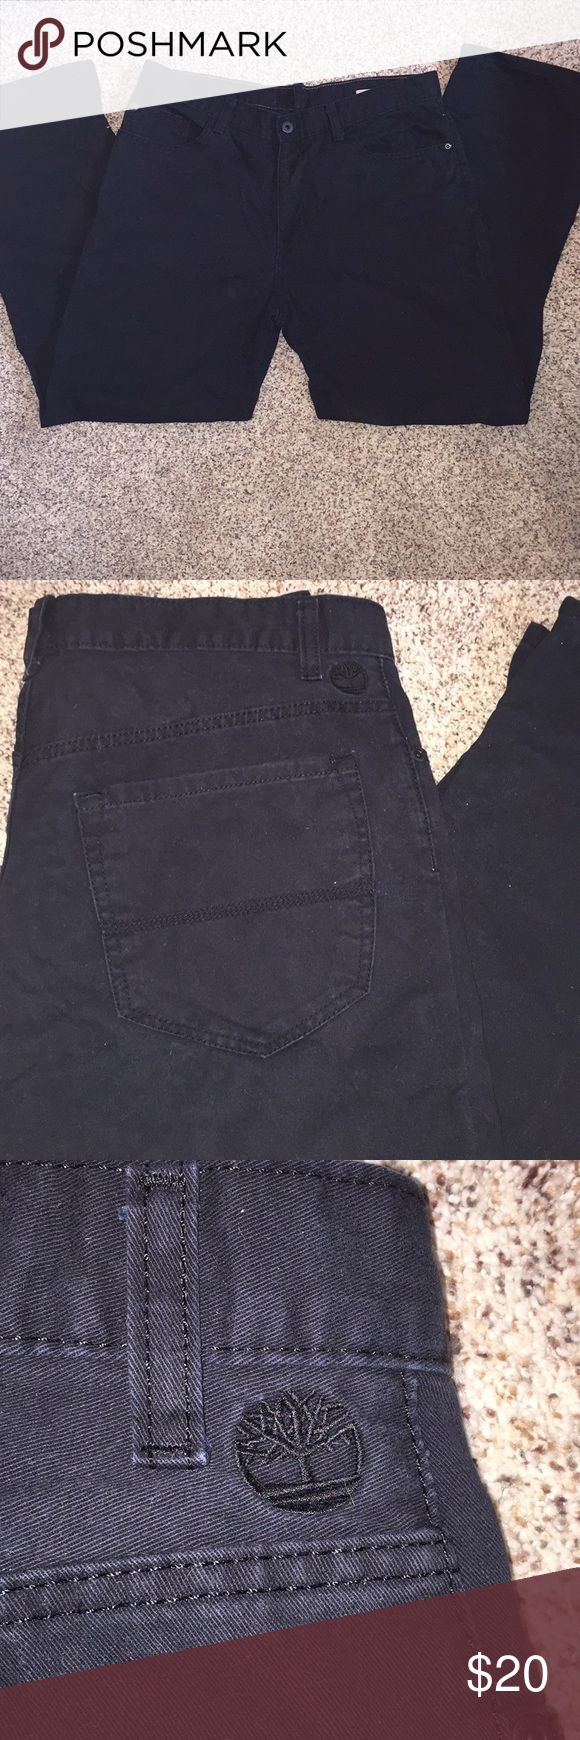 Men's timberland black pants. Size 34W 30L Very nice Men's Timberland black denim pants. Size 34/30. Gently used, shows no signs of being worn. Timberland Jeans Straight